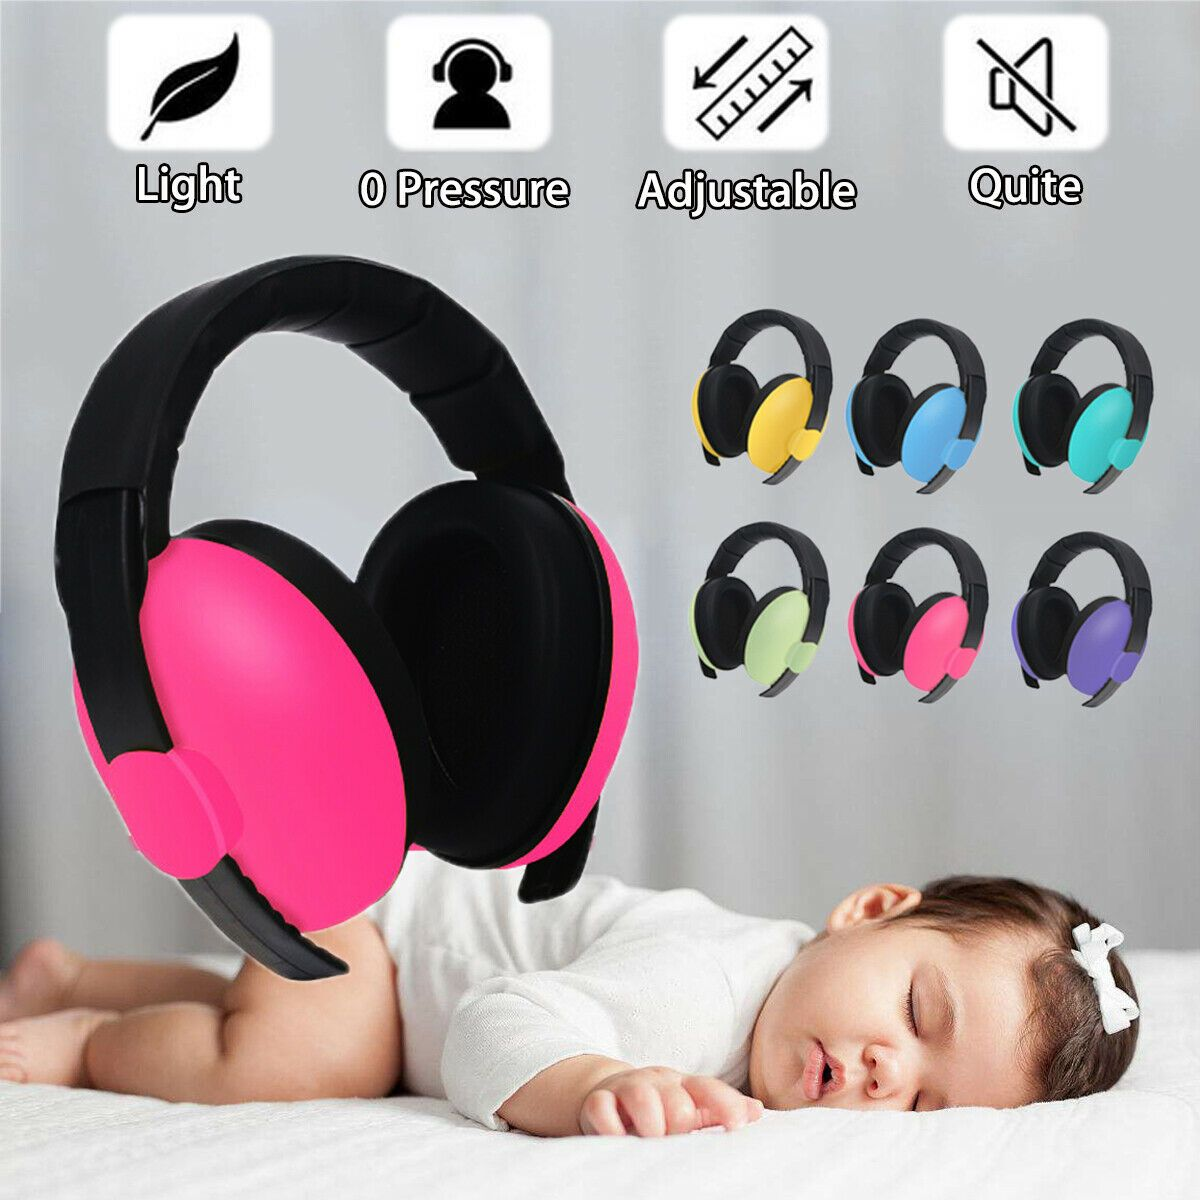 Baby Infant Earmuffs Ear Muffs Sleeping Hearing Protection Noise Reducing Plug Ear Muffs Earmuffs Earmu Baby Hearing Protection Hearing Protection Earmuffs